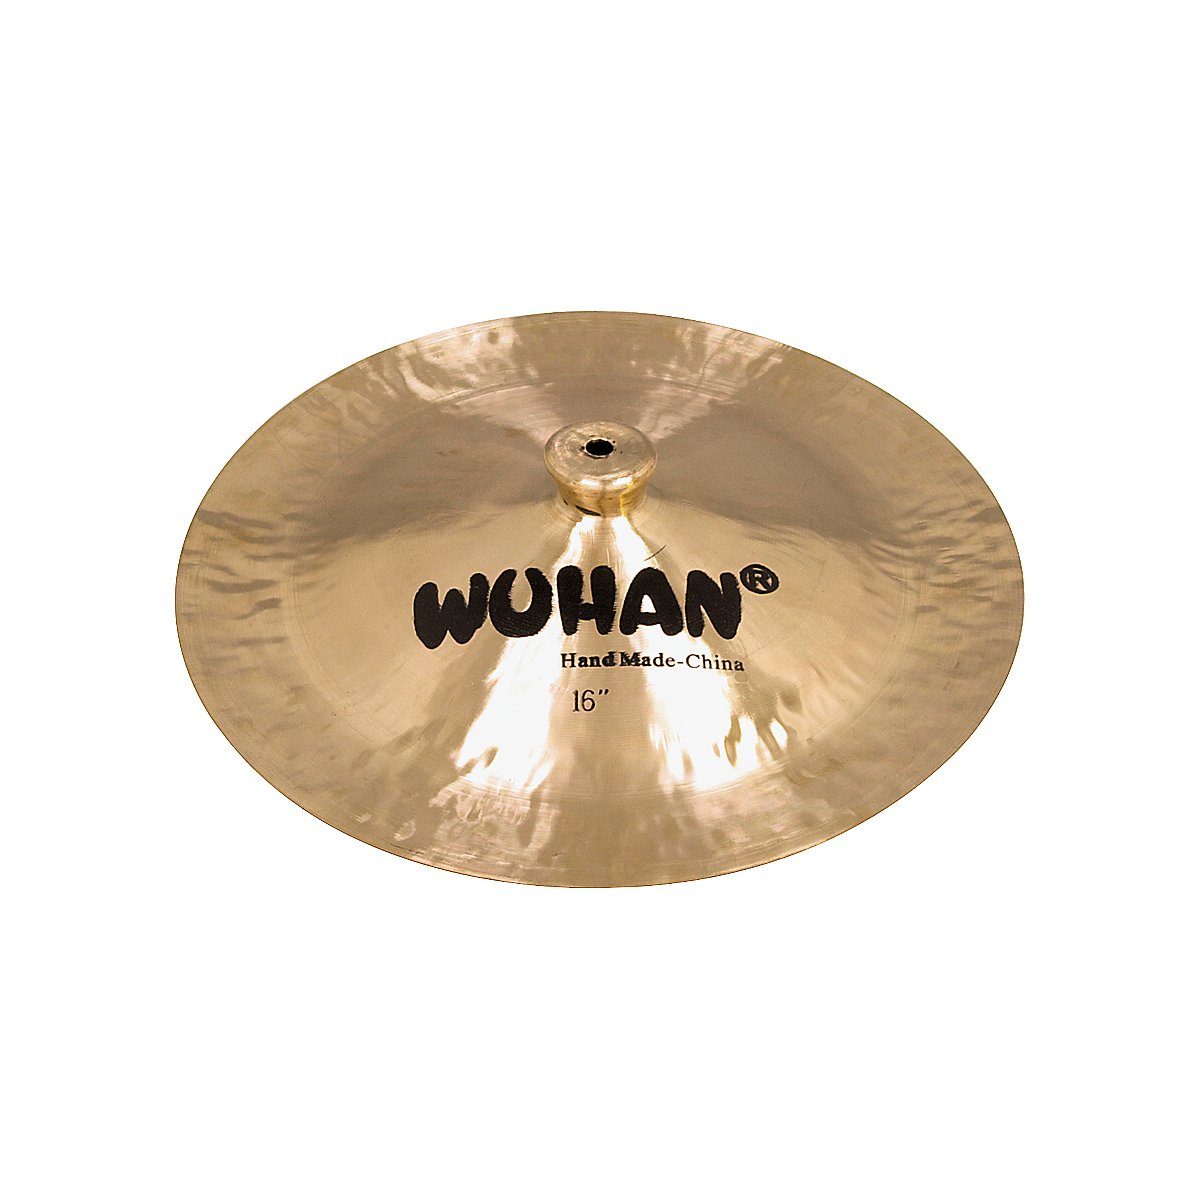 WUHAN WU104-16 China Cymbal by WUHAN